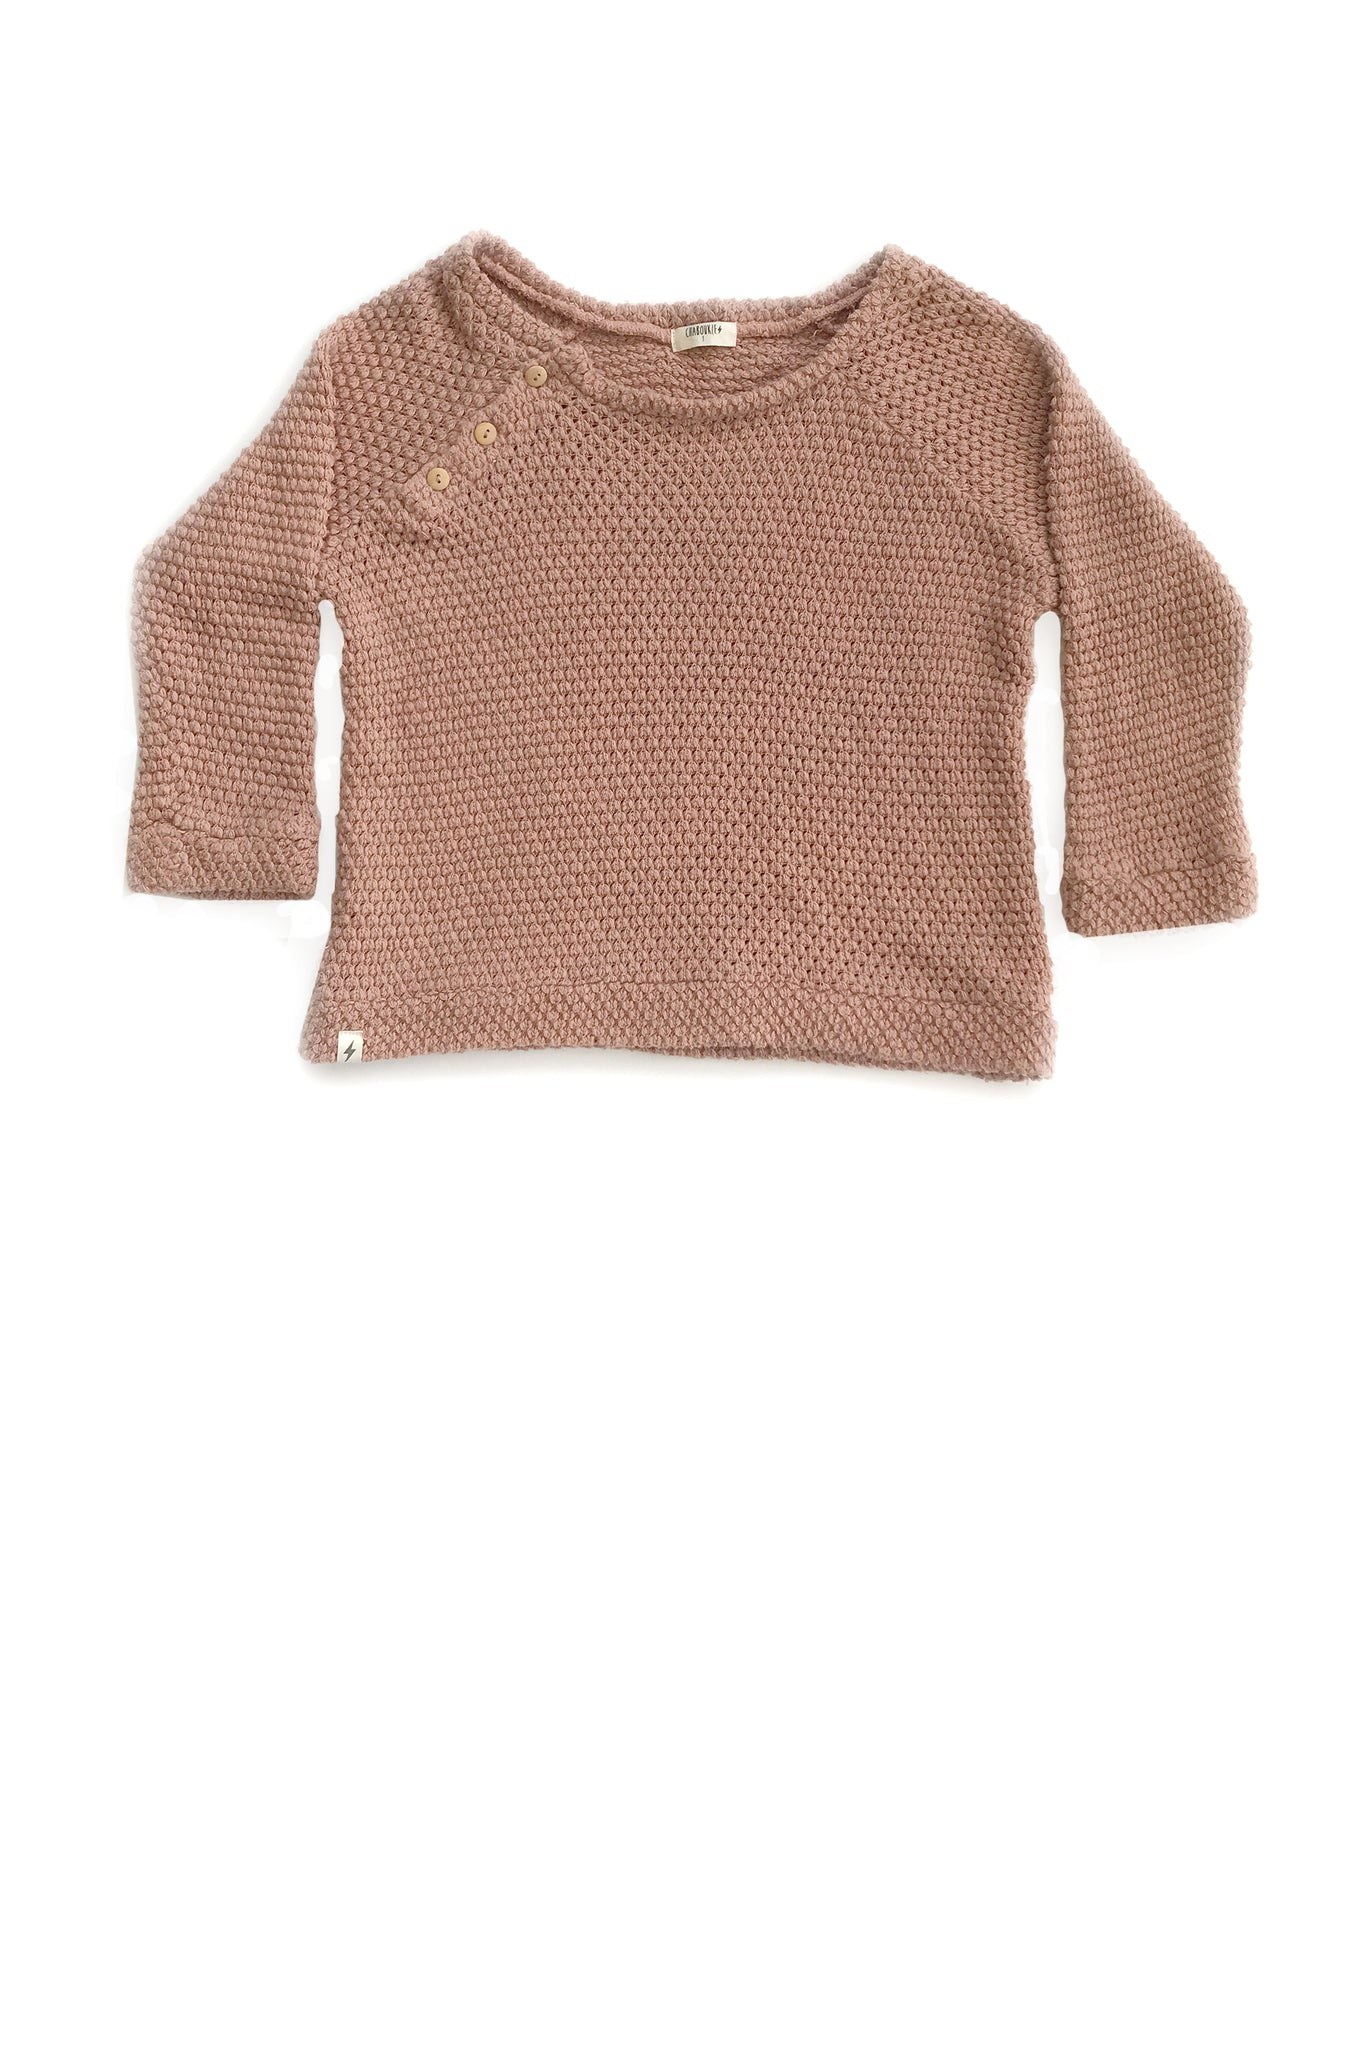 Button Sweater in Mauve